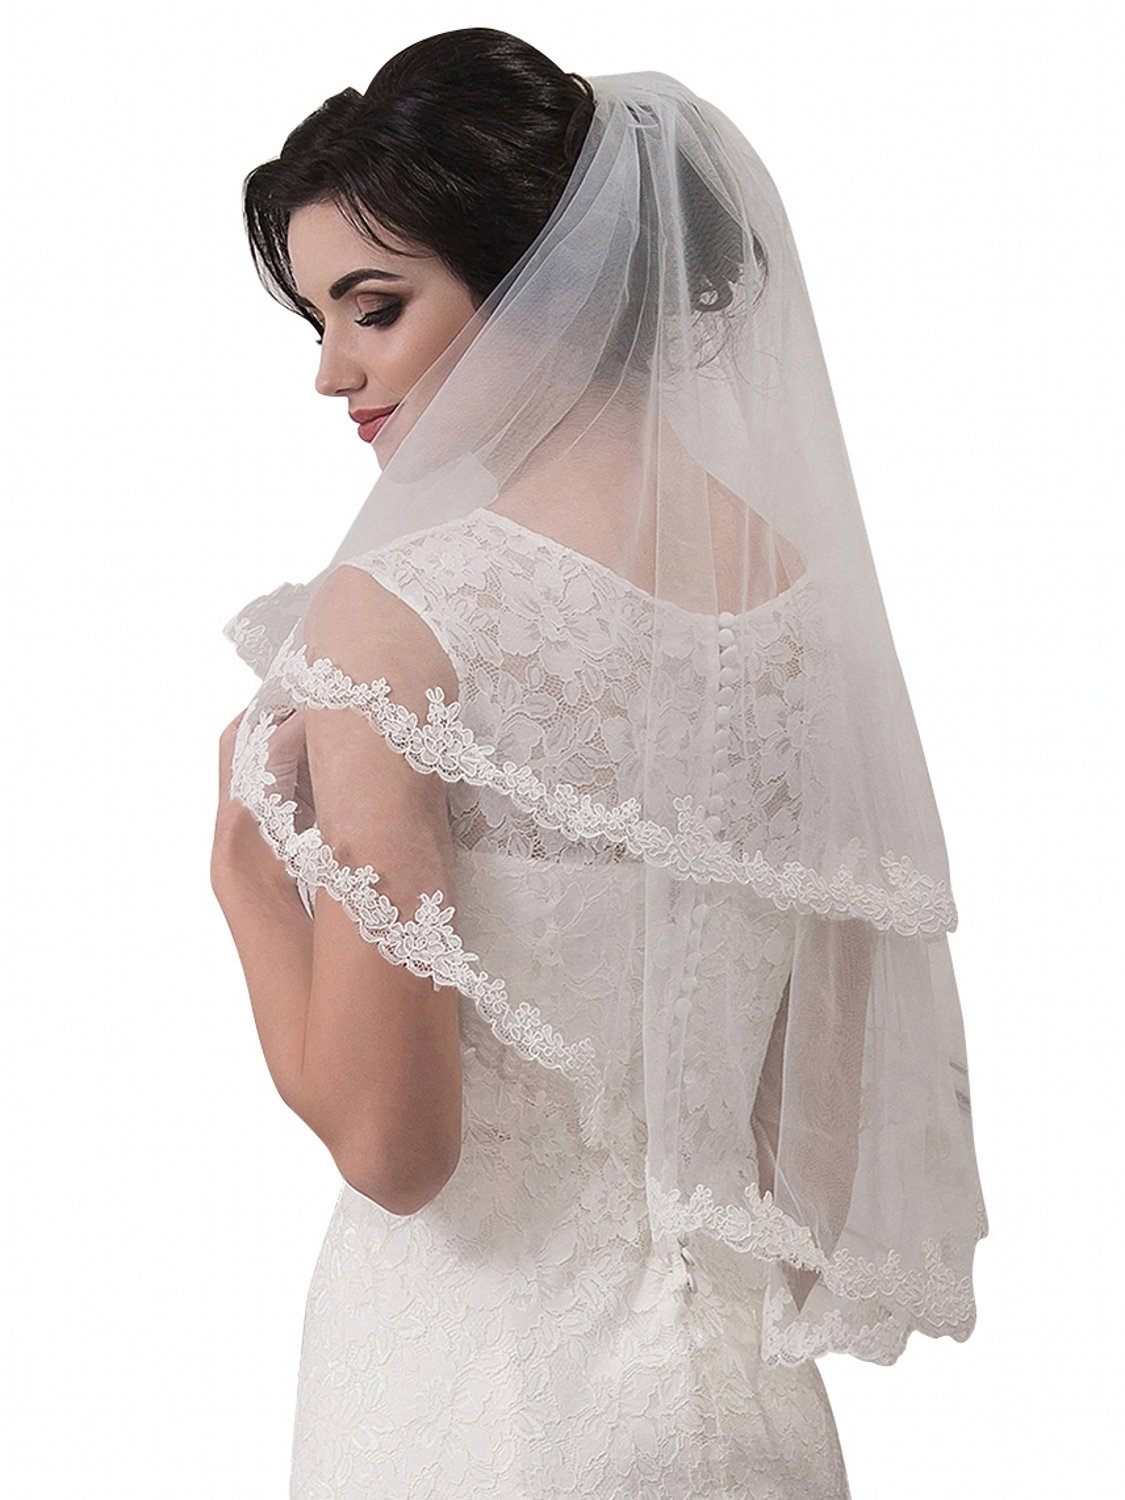 Women's Tulle Sheer Wedding Bridal Veils 2 Tier Elbow Length Wedding Veils,White